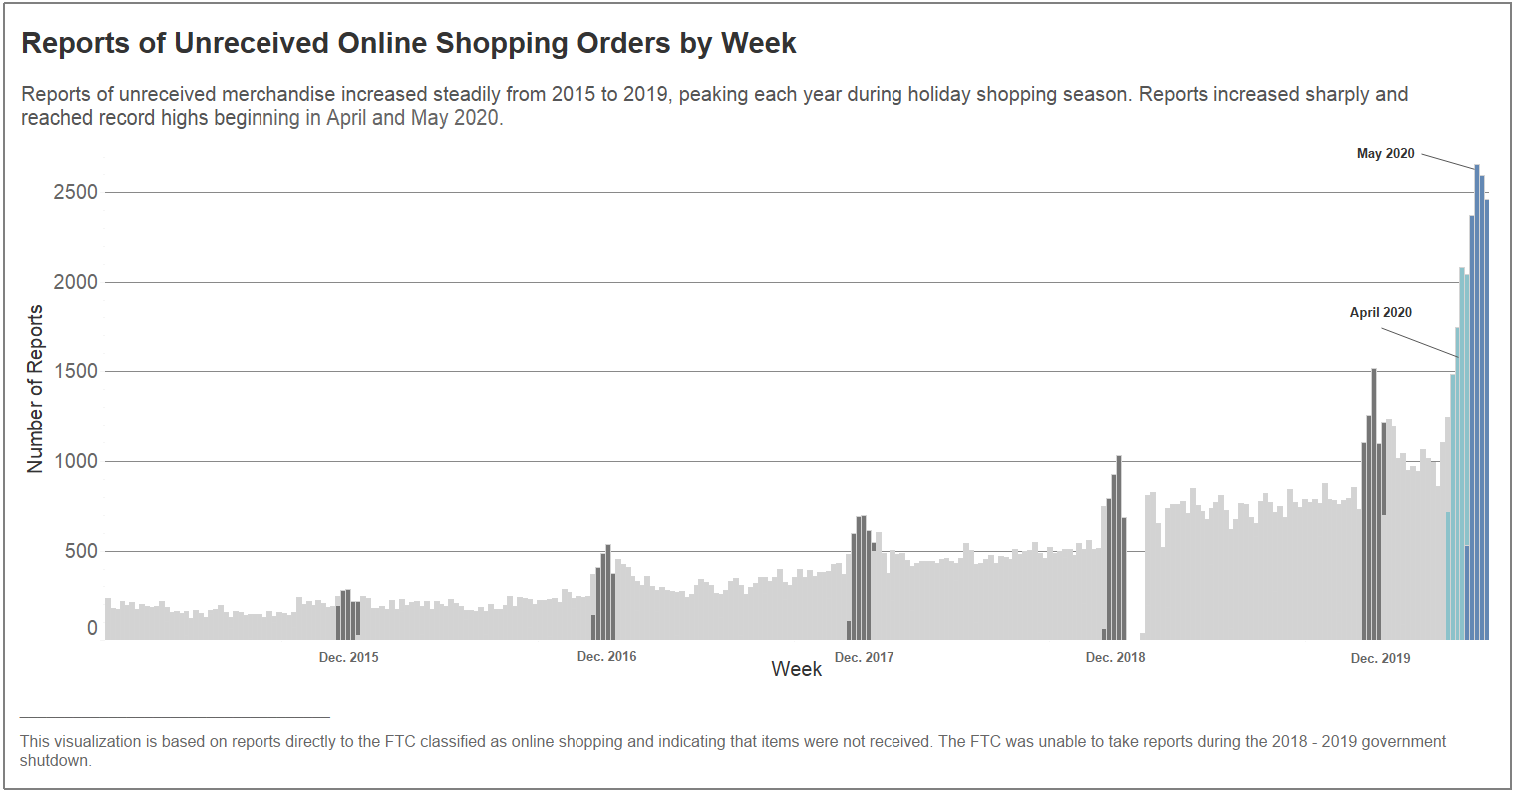 Reports of Unreceived Online Shopping Orders by Week - Reports of unreceived merchandise increased steadily from 2015 to 2019, peaking each year during holiday shopping season. Reports increased sharply and reached record highs beginning in April and May 2020.